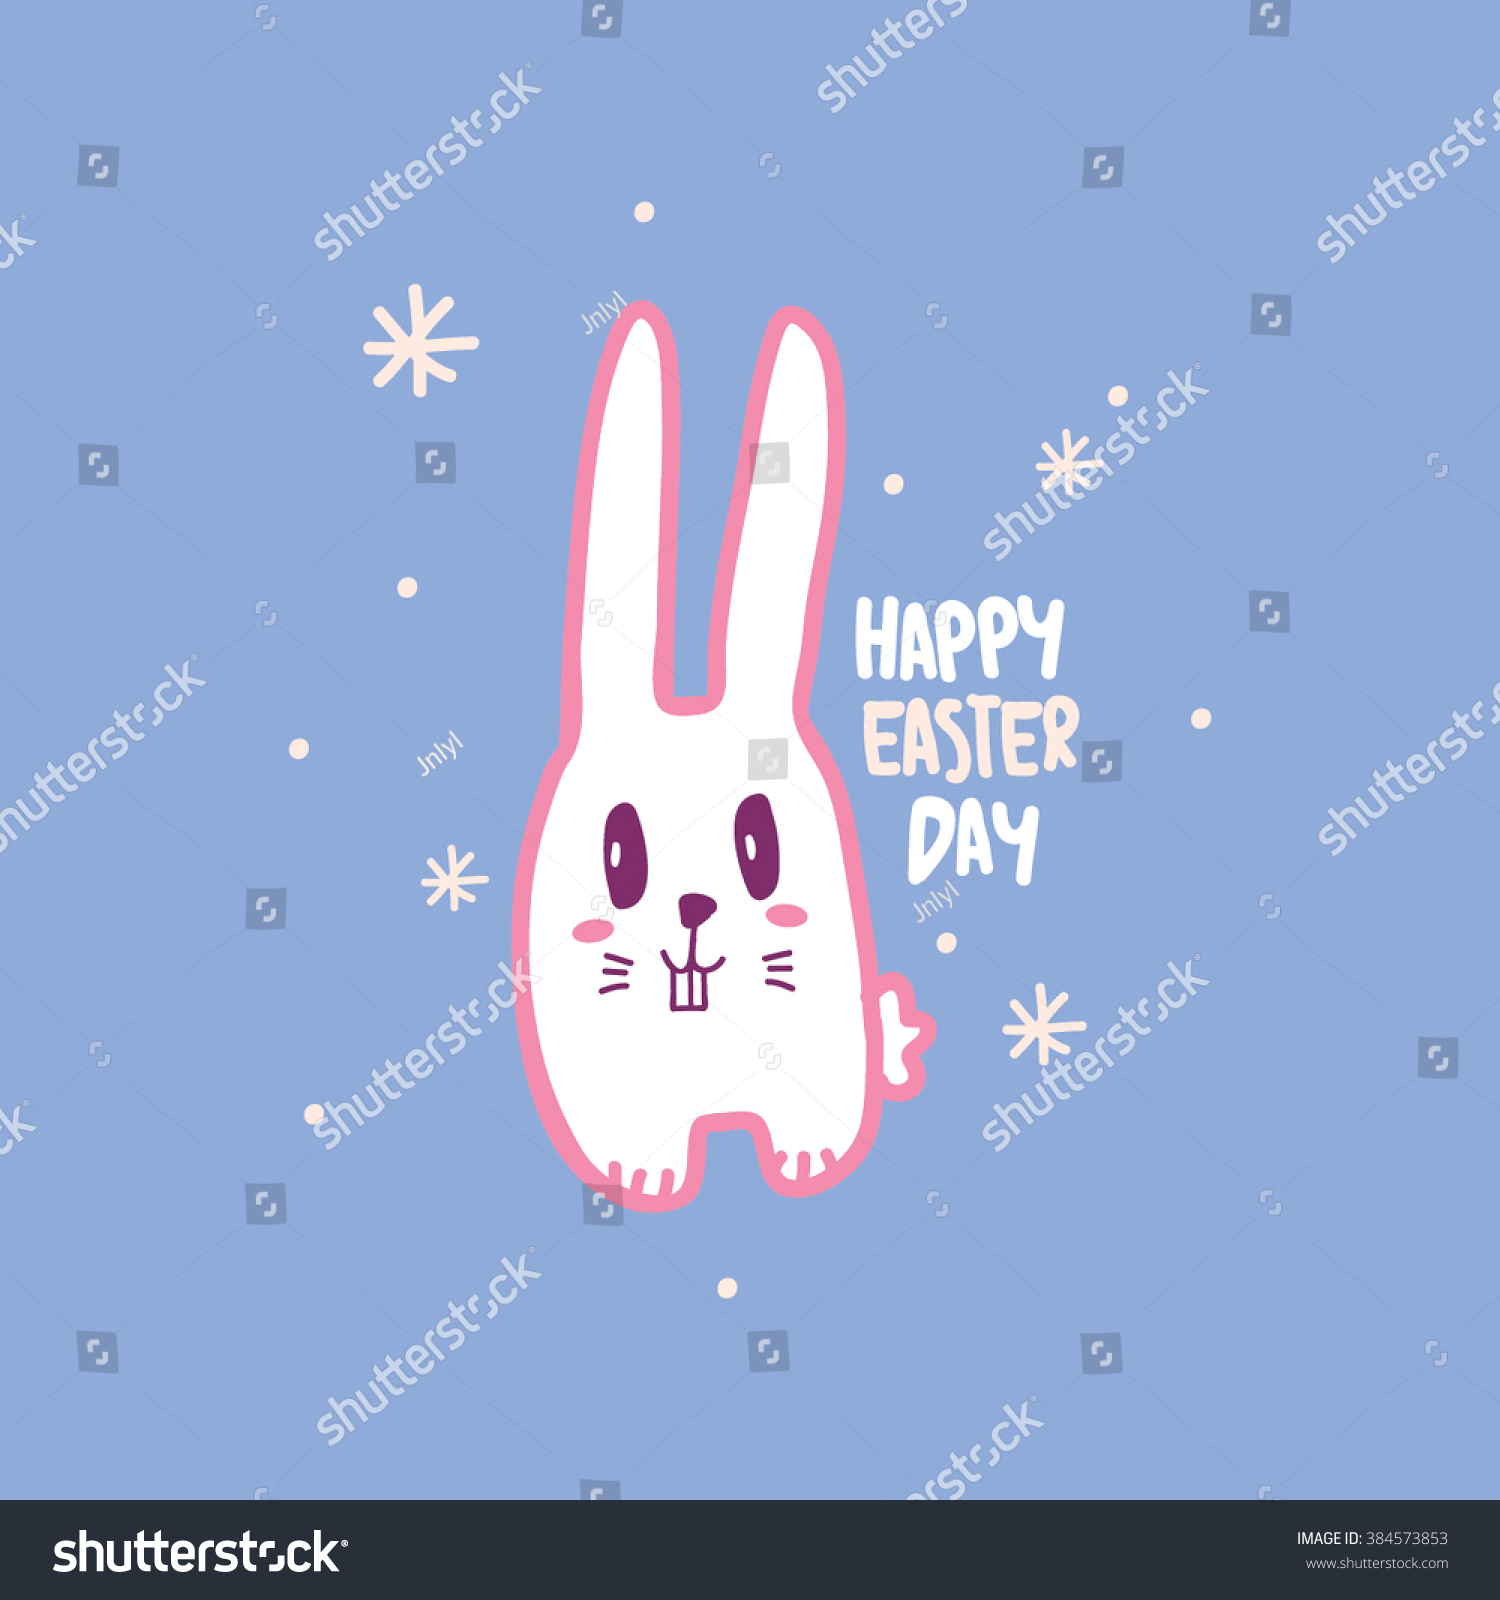 Easter Day Bunny Illustration Typography Design Stock Vector Hd